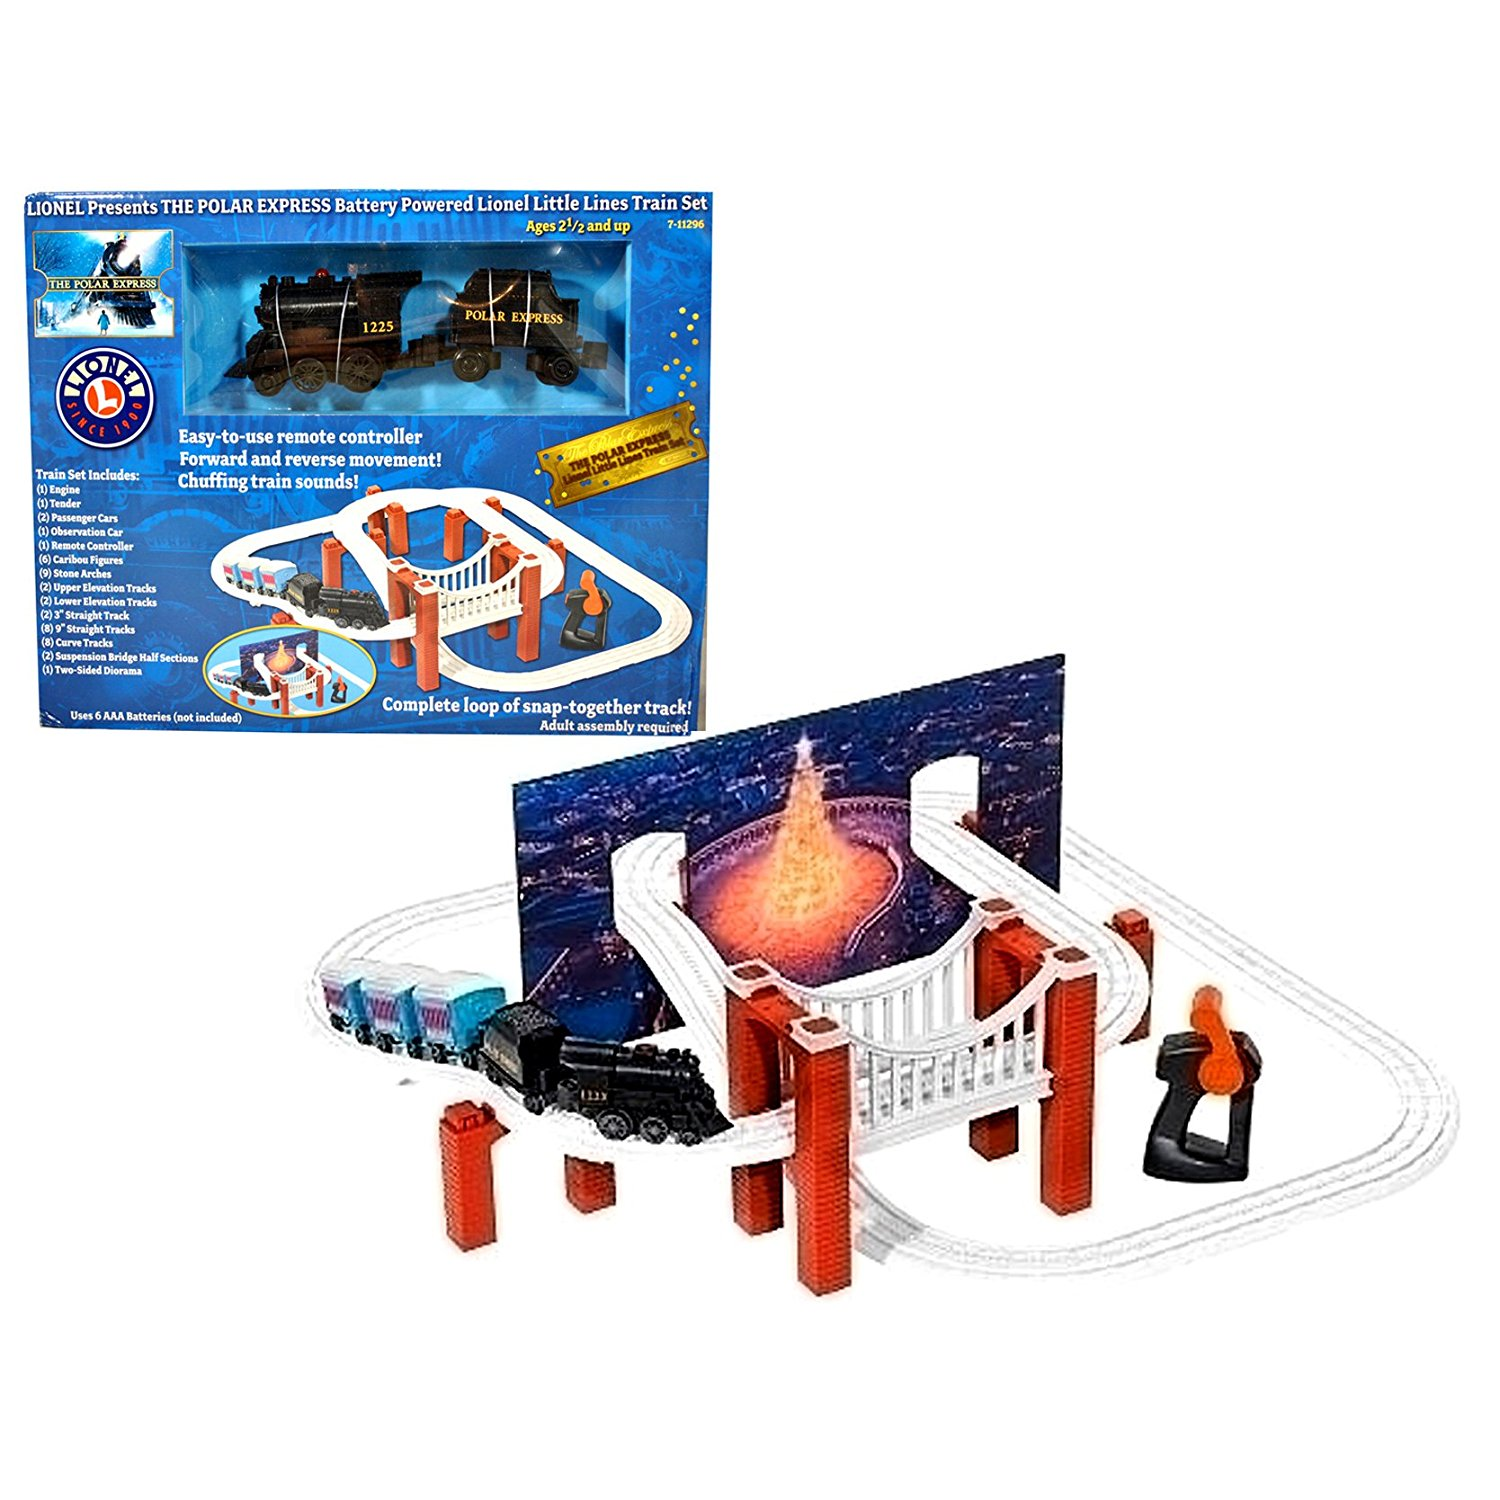 "Lionel Battery Powered Remote Control Little Lines Train Set - THE POLAR EXPRESS with Engine, Tender, 2 Passenger Cars, Observation Car, Remote Controller, 6 Caribou Figure, 9 Stone Arches, 2 Upper Elevation Tracks, 2 Lower Elevation Tracks, 2 - 3"" Straight Tracks, 8 - 9"" Straight Tracks, 8 Curve"